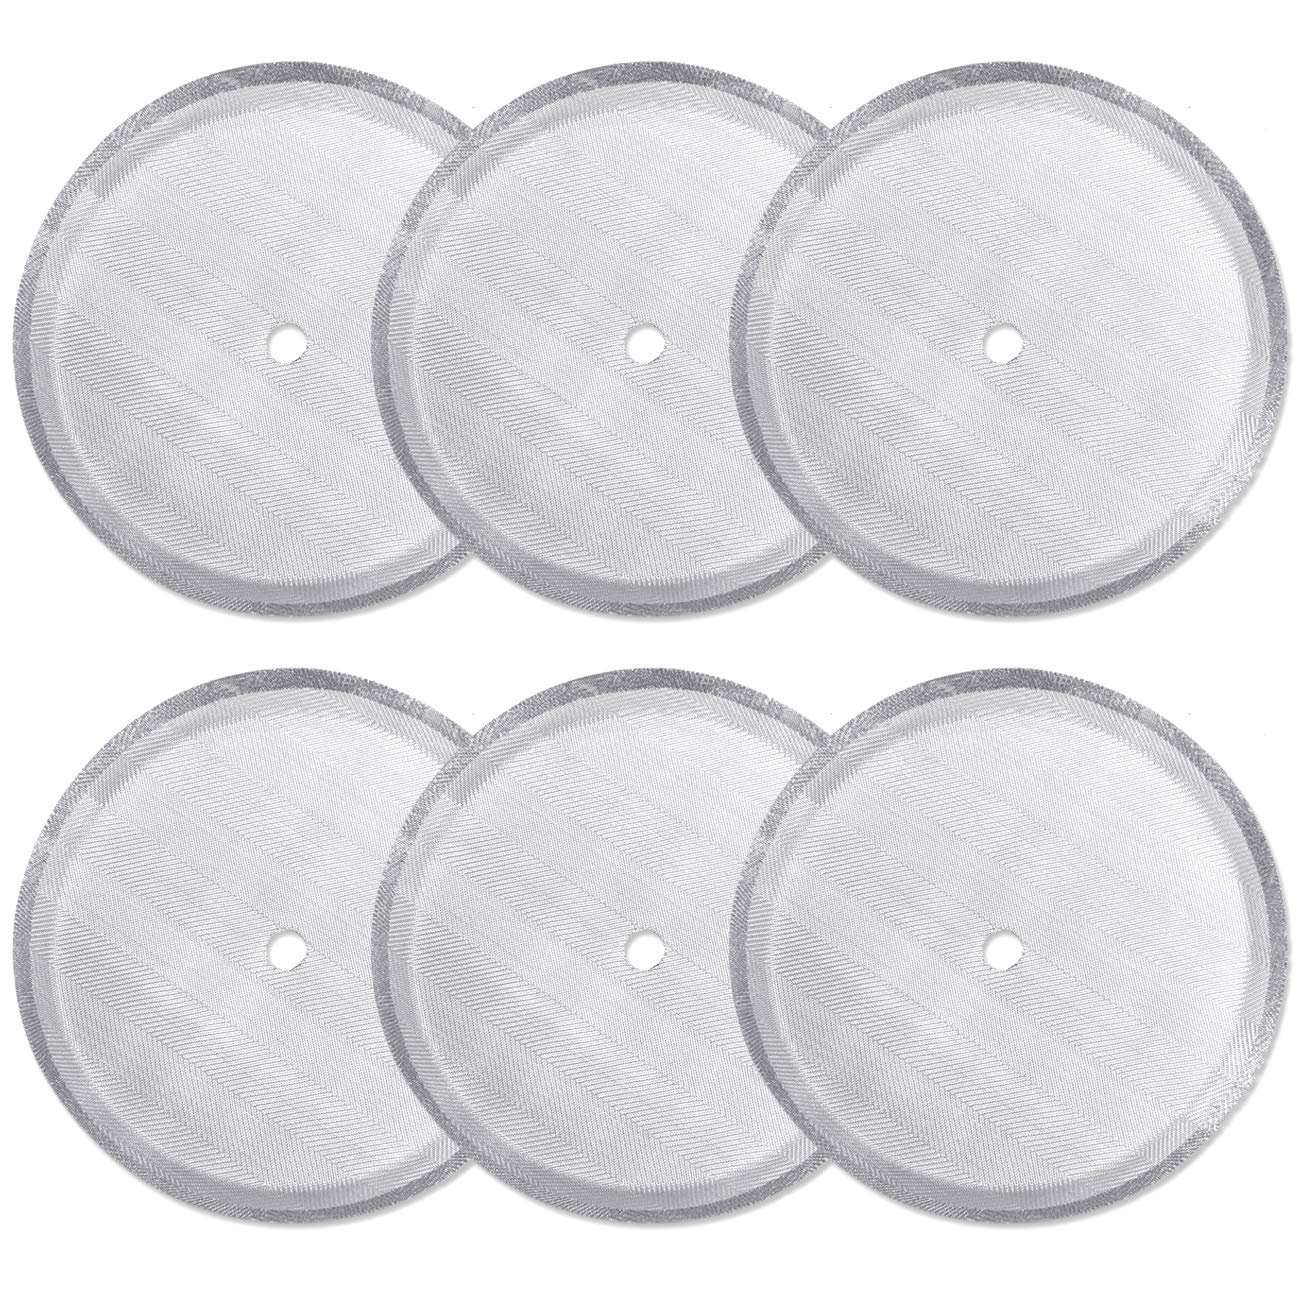 6 Pack French Press Replacement Filter Screen,Reusable Stainless Steel Mesh Filters for Universal 1000 ml / 34 oz / 8 cup French Press Coffee Makers